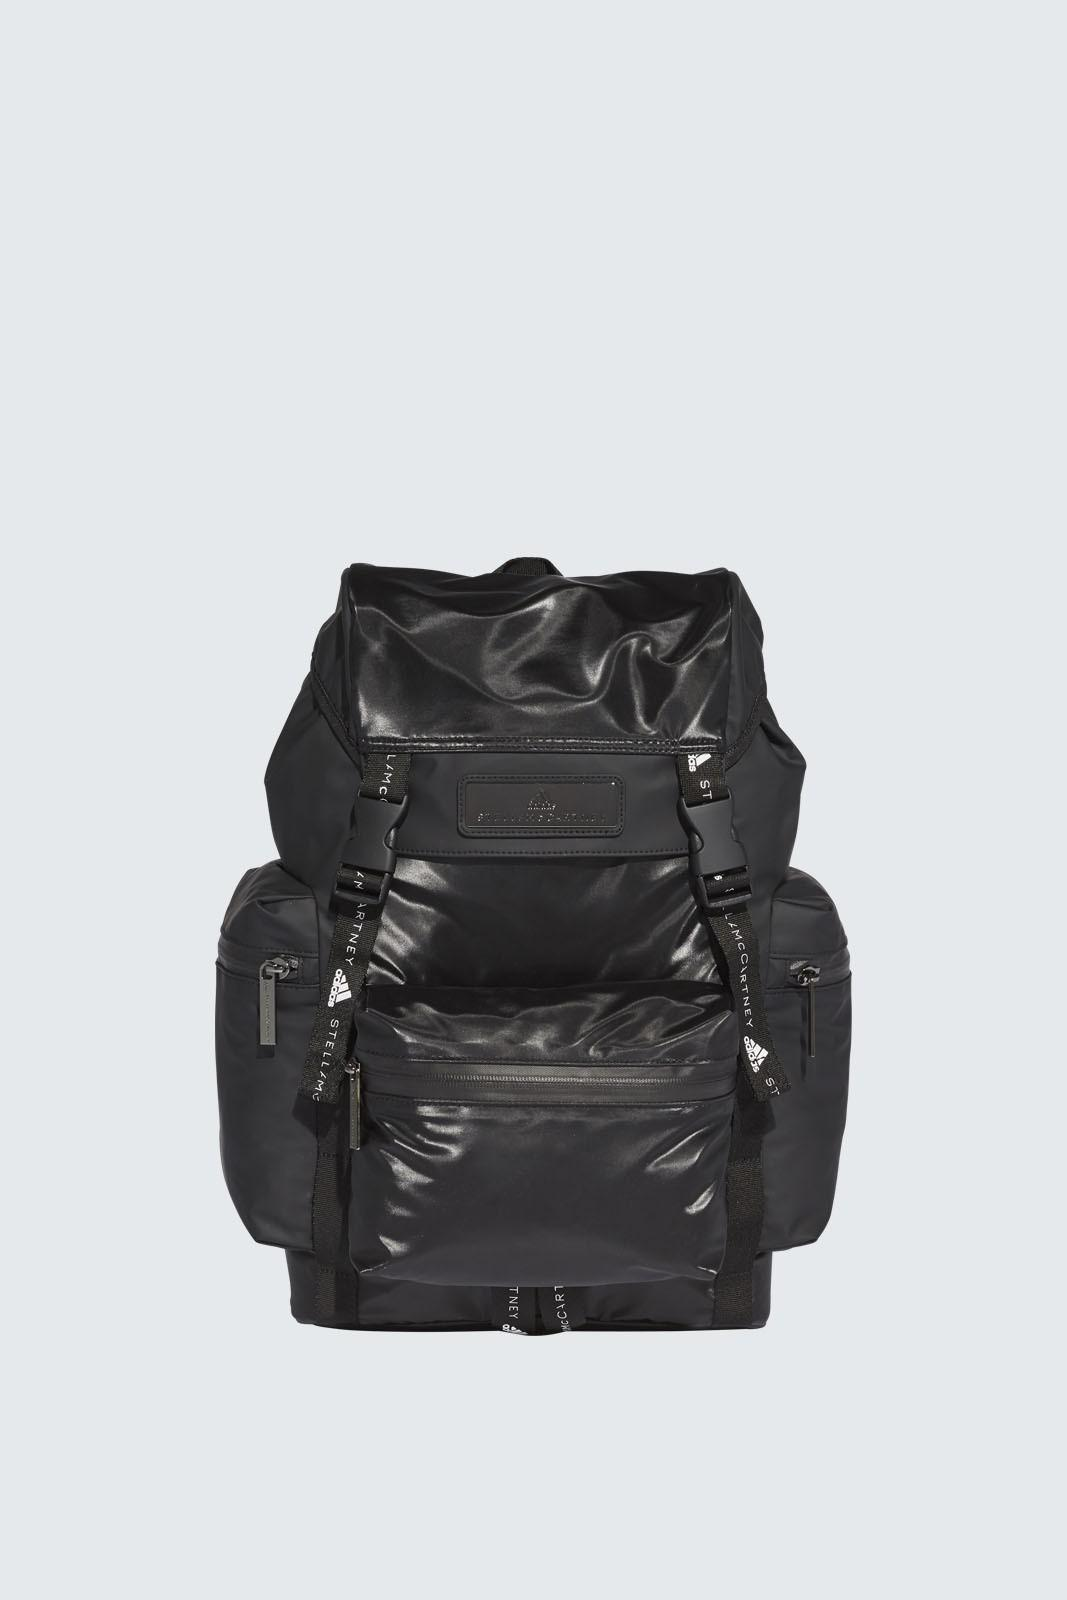 85f41f8e4f07 Lyst - Adidas By Stella Mccartney Backpack in Black